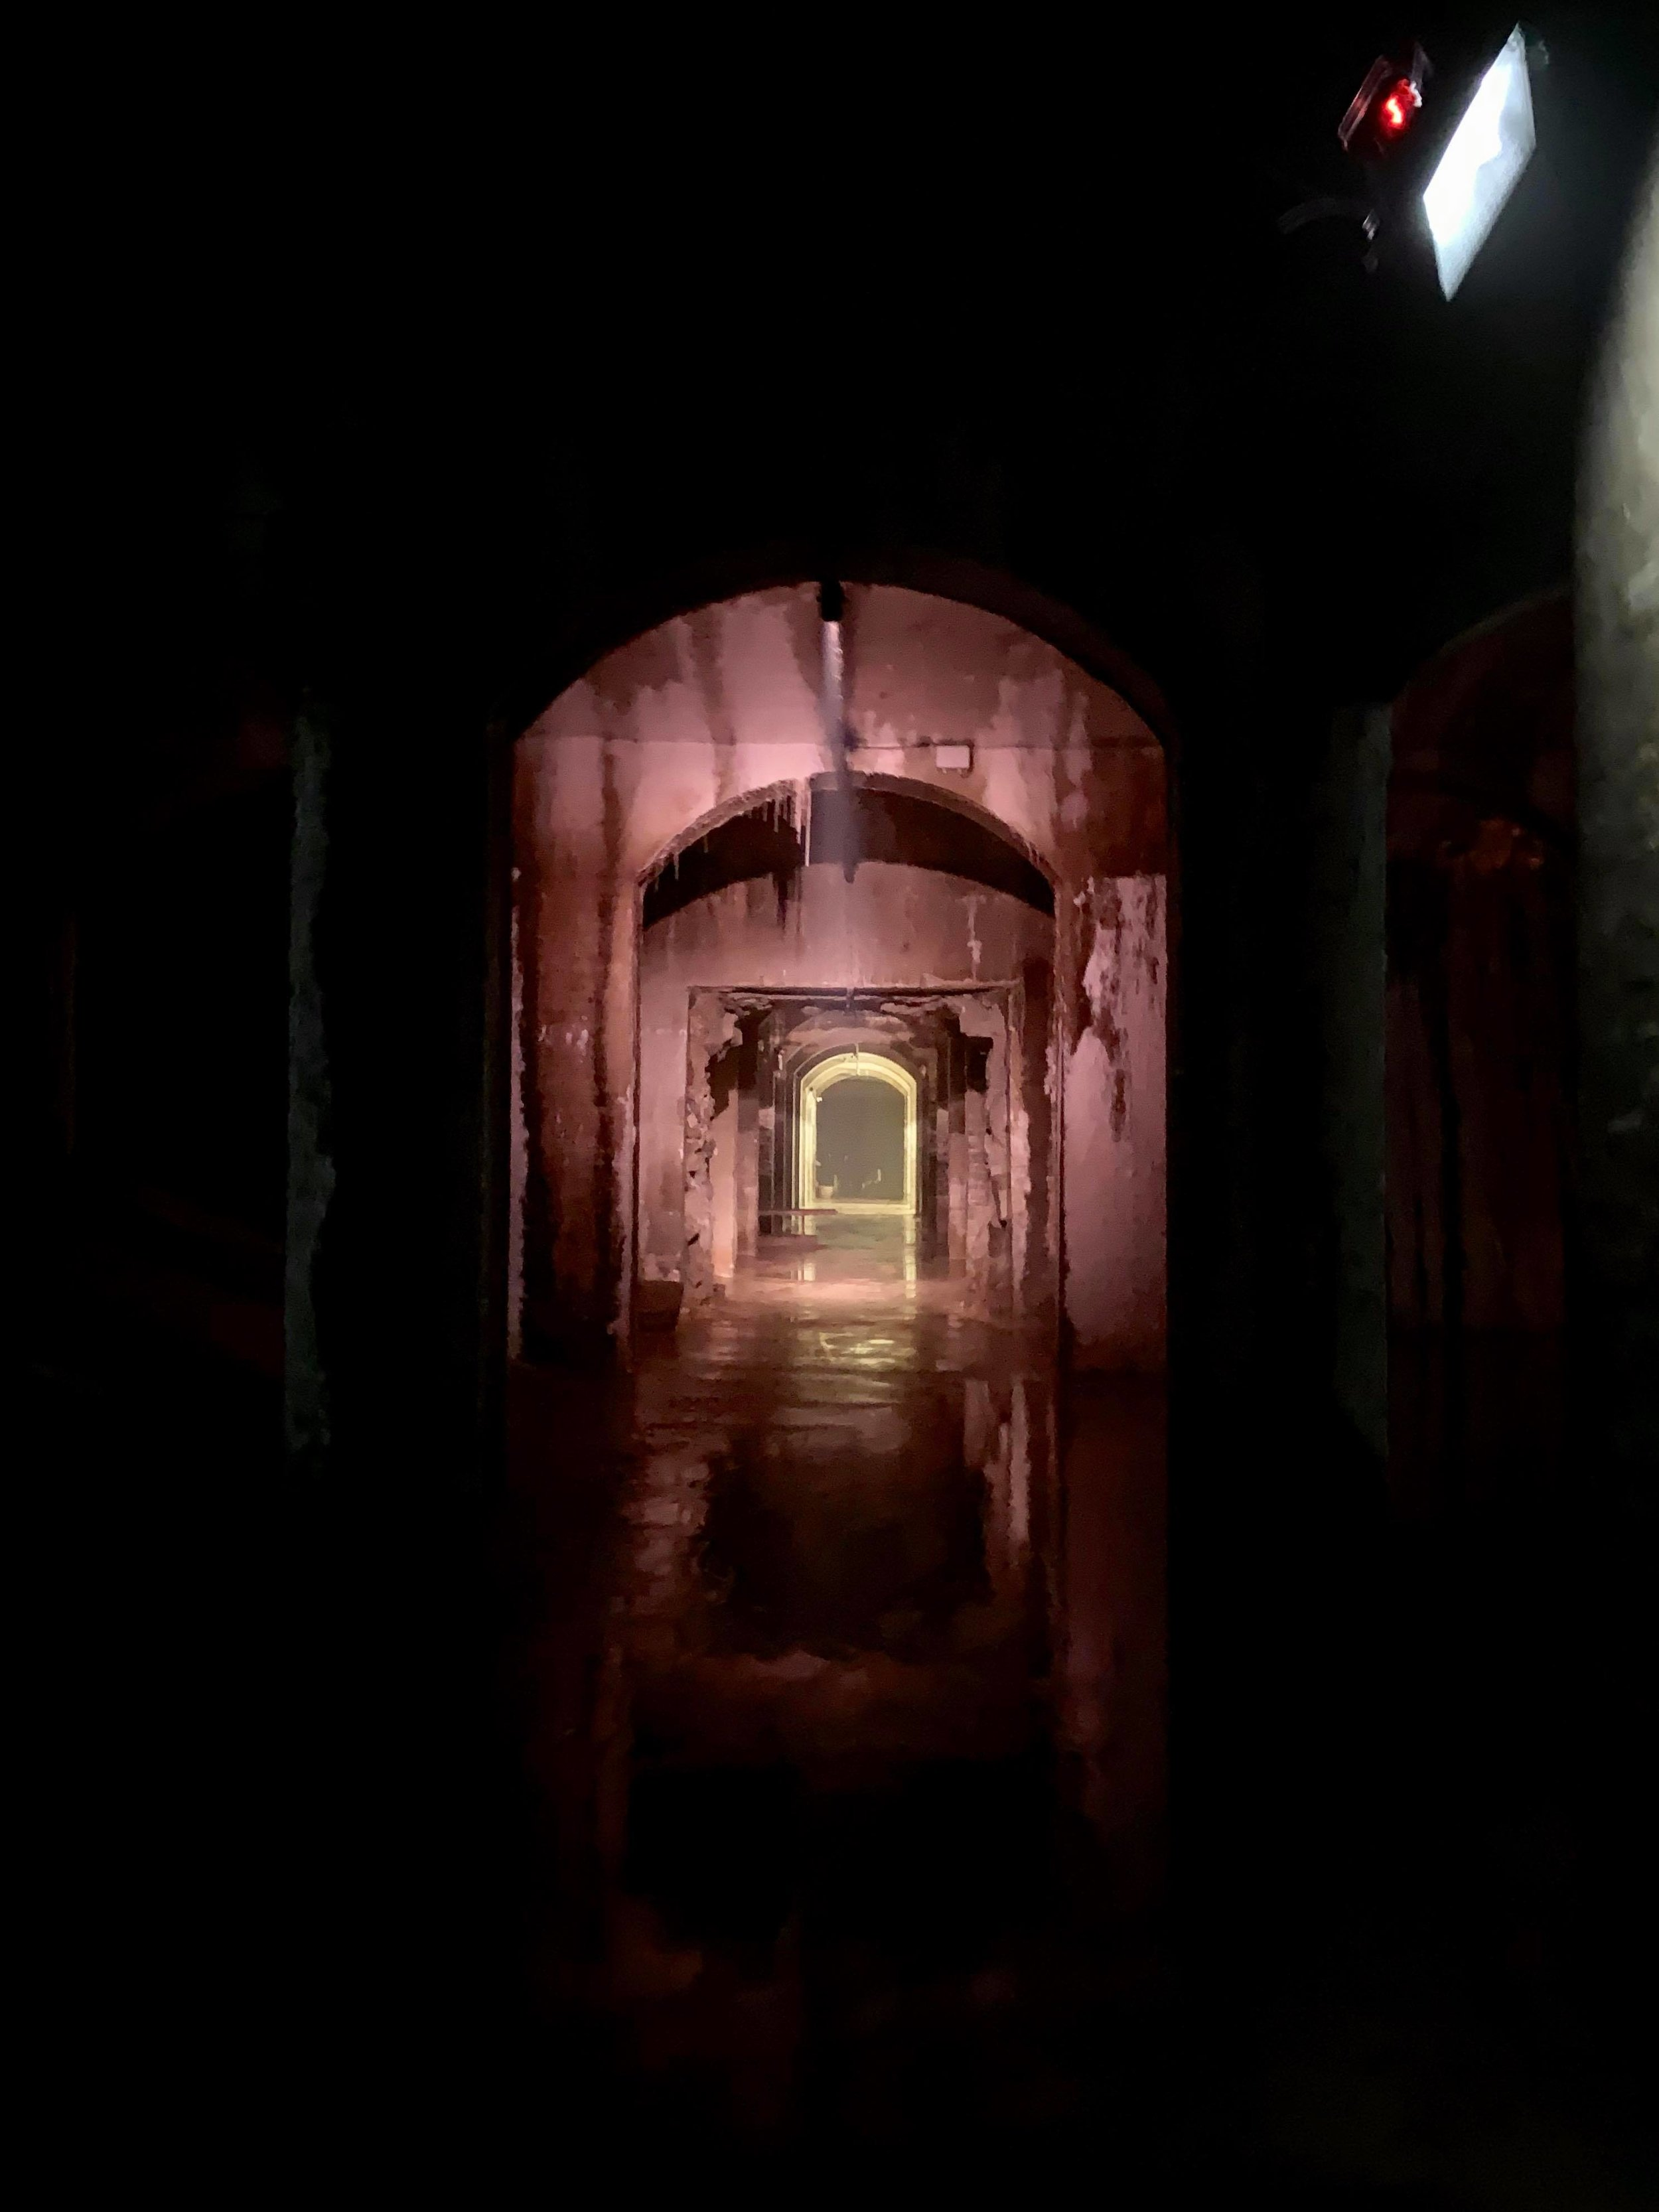 Cold, dark, massive… - a few words that come to mind when wandering around the cisterns. Completed in 1859 and forgotten for centuries, these subterranean chambers reminded me of the catacombs one finds under churches.